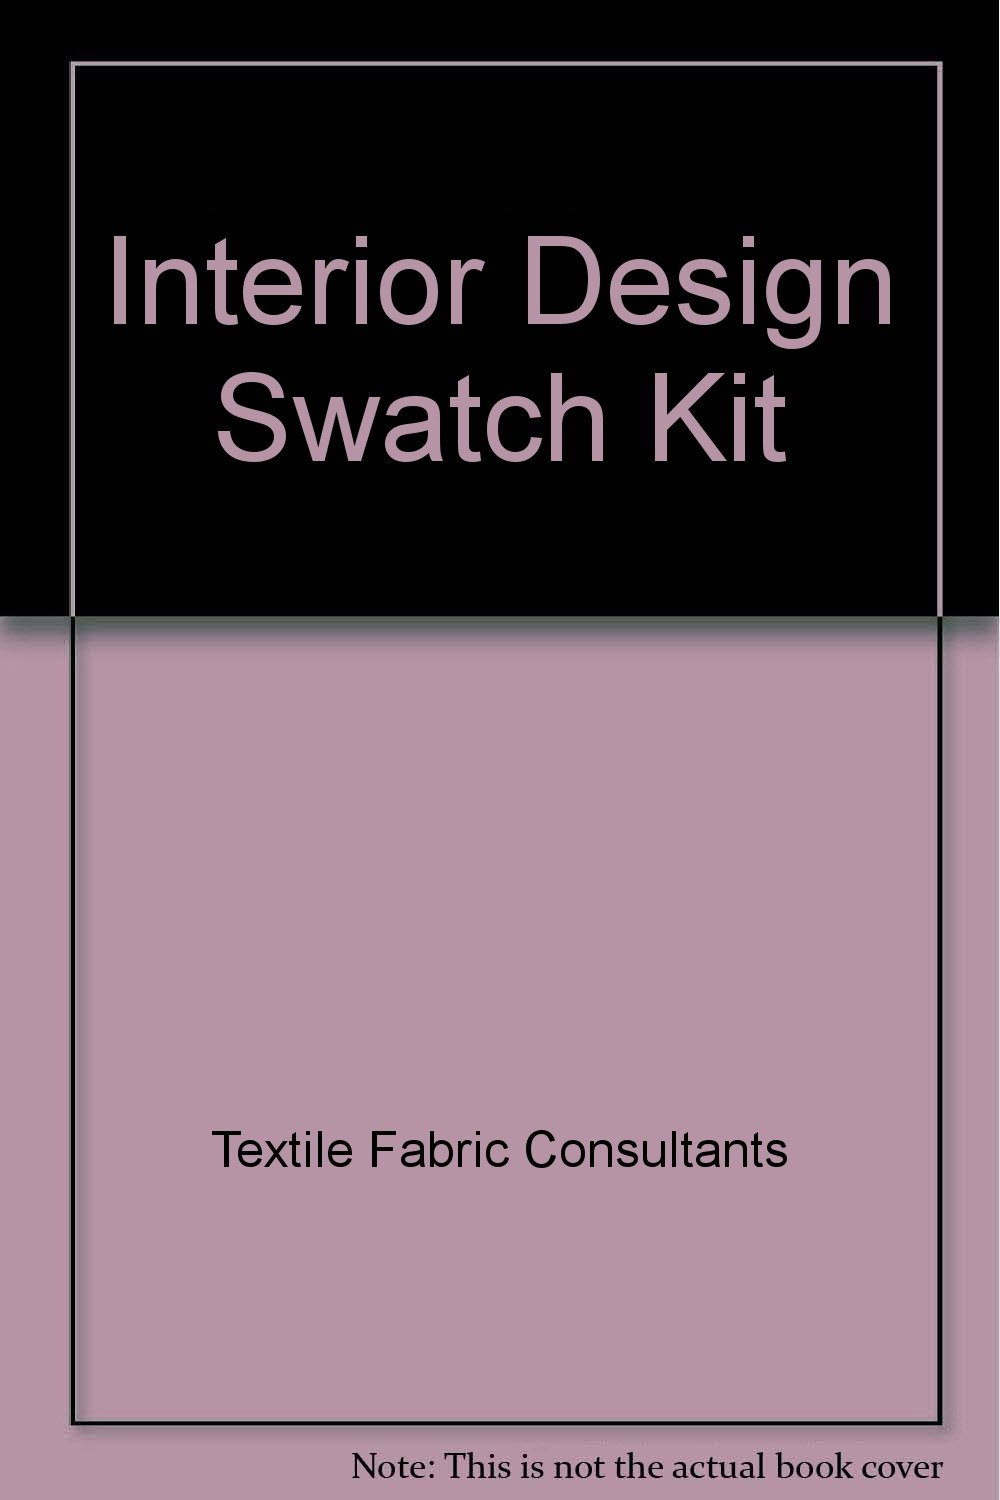 Interior Design Swatch Kit Amazonca Textile Fabric Consultants Books